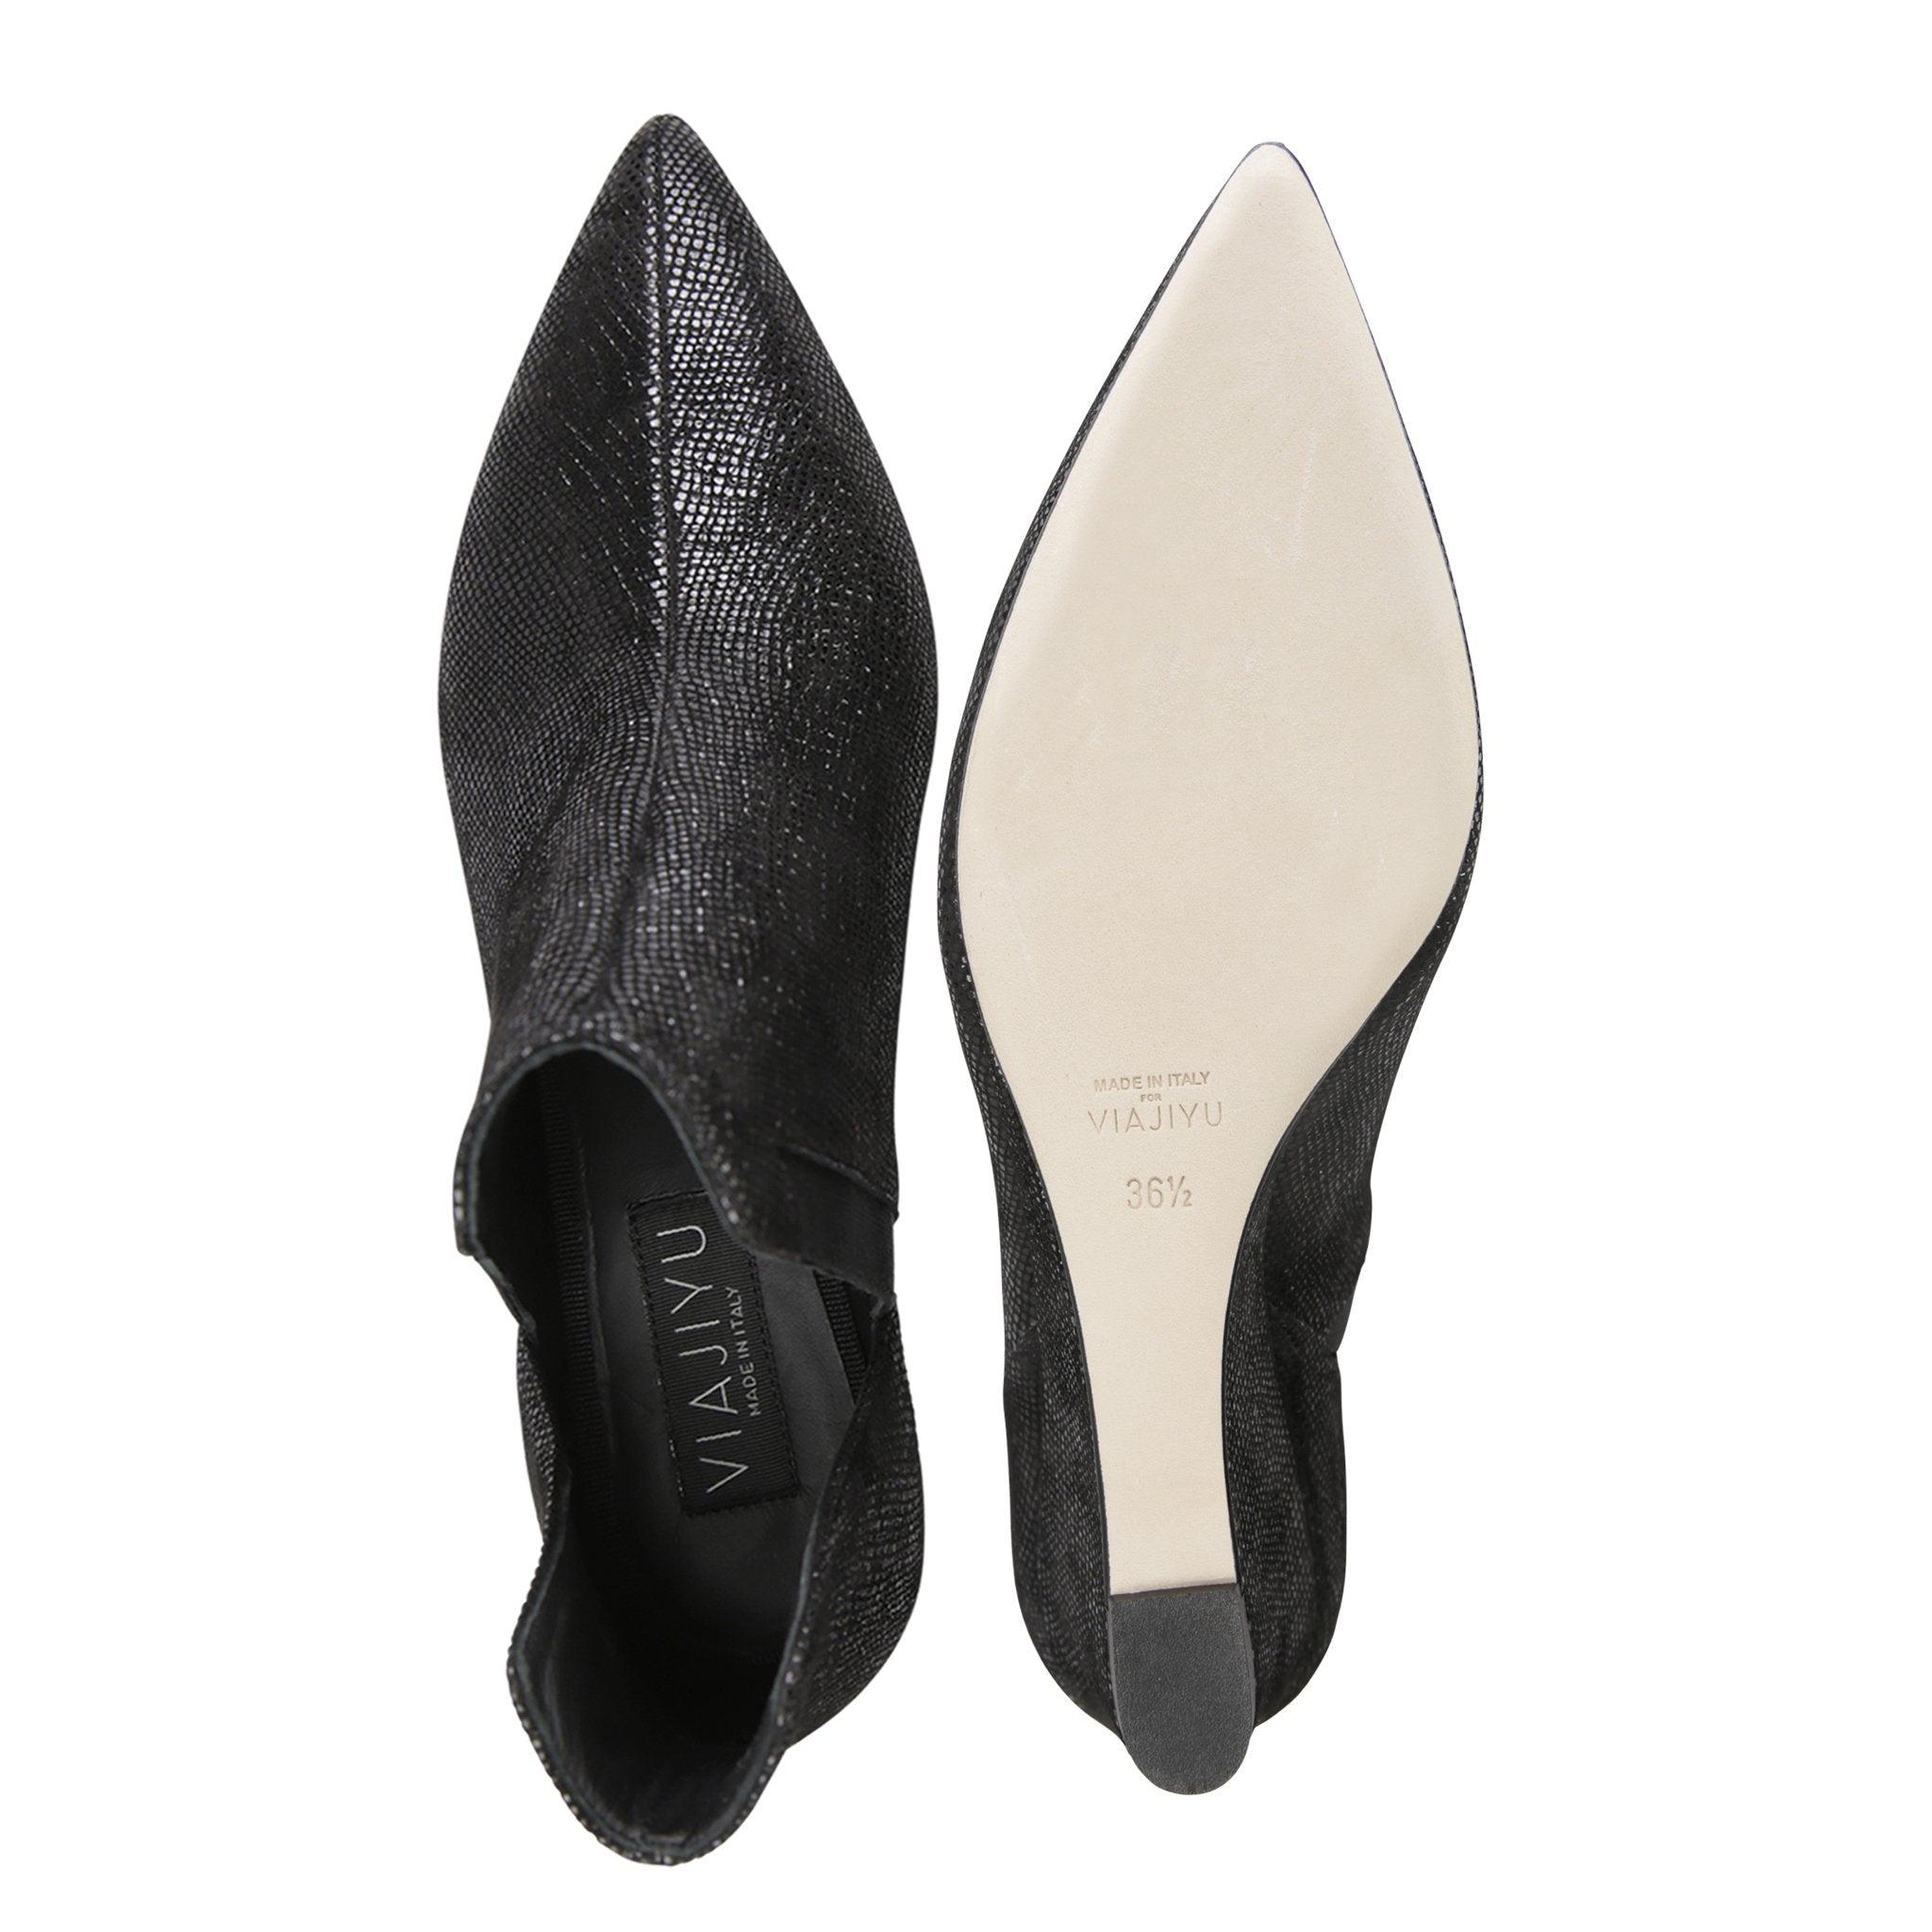 SYRENE - Karung Nero + Grosgrain Nero, VIAJIYU - Women's Hand Made Sustainable Luxury Shoes. Made in Italy. Made to Order.